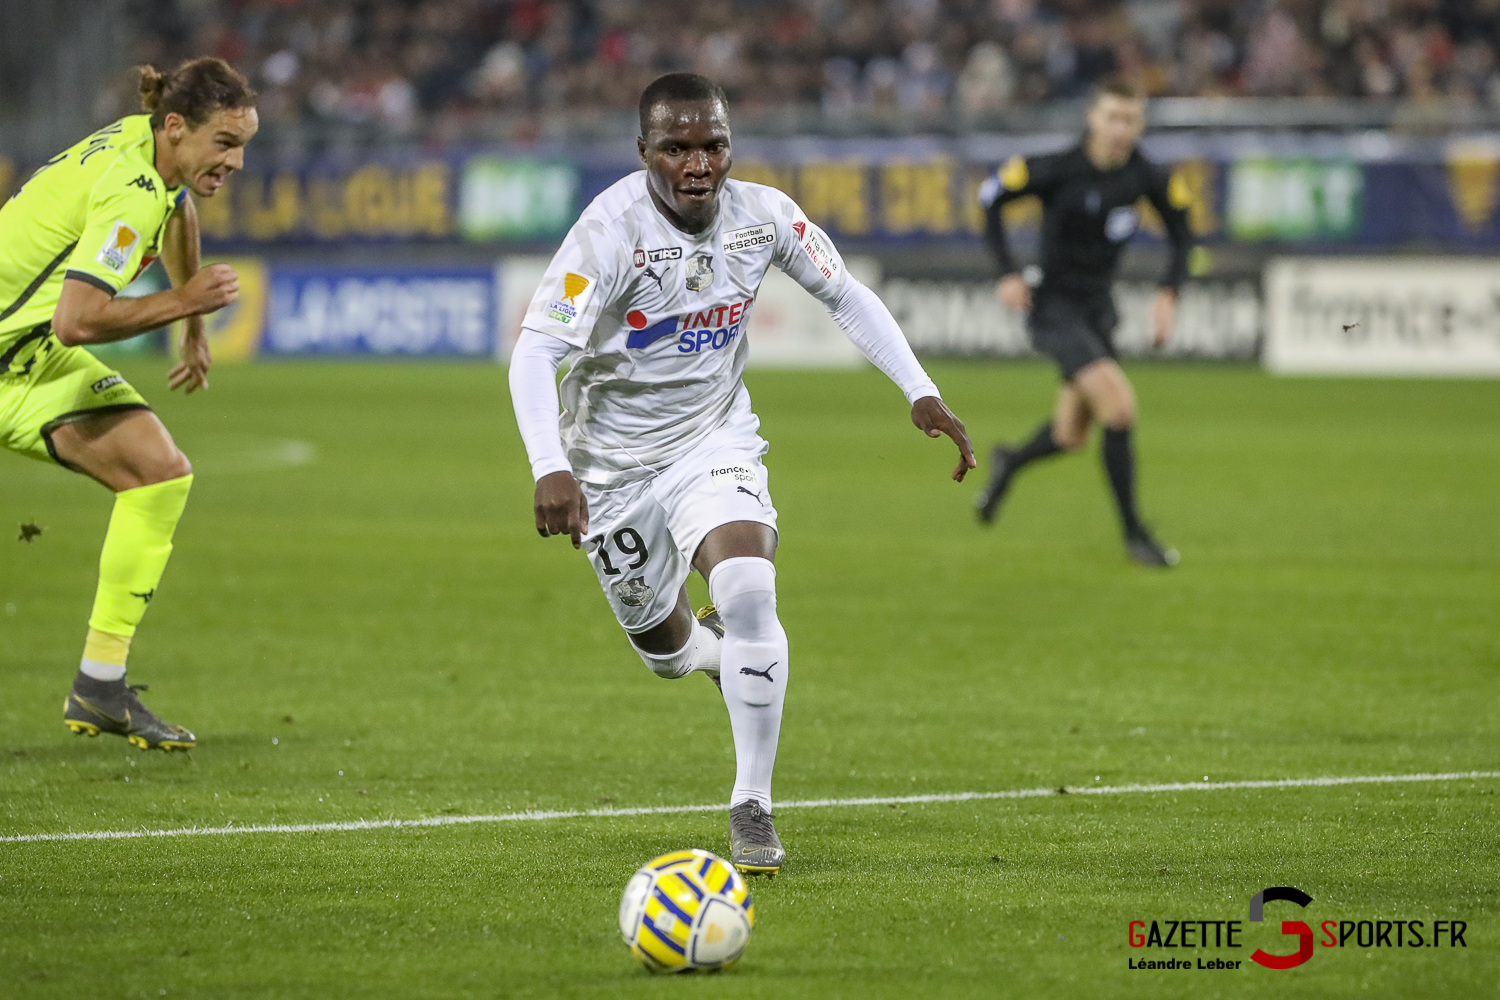 Football Coupe Amiens Sc Vs Angers Akolo 0005 Leandre Leber Gazettesports